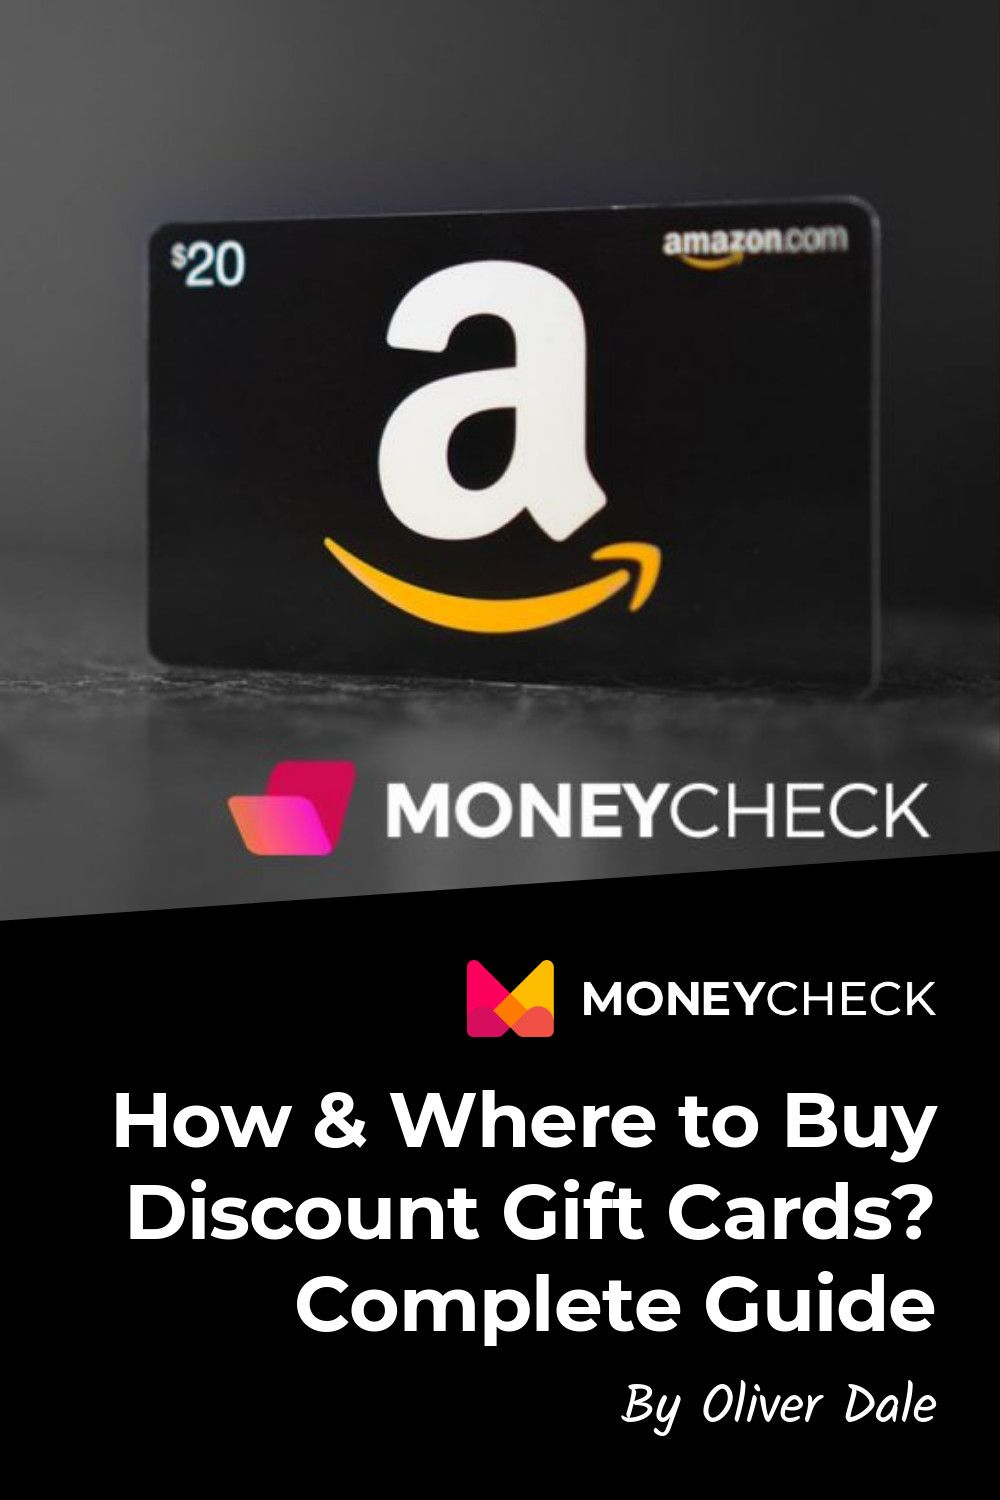 Step By Step Instructions To Win An Amazon Gift Card 2020 Amazon Gift Card Free Amazon Gift Cards Buy Discounted Gift Cards